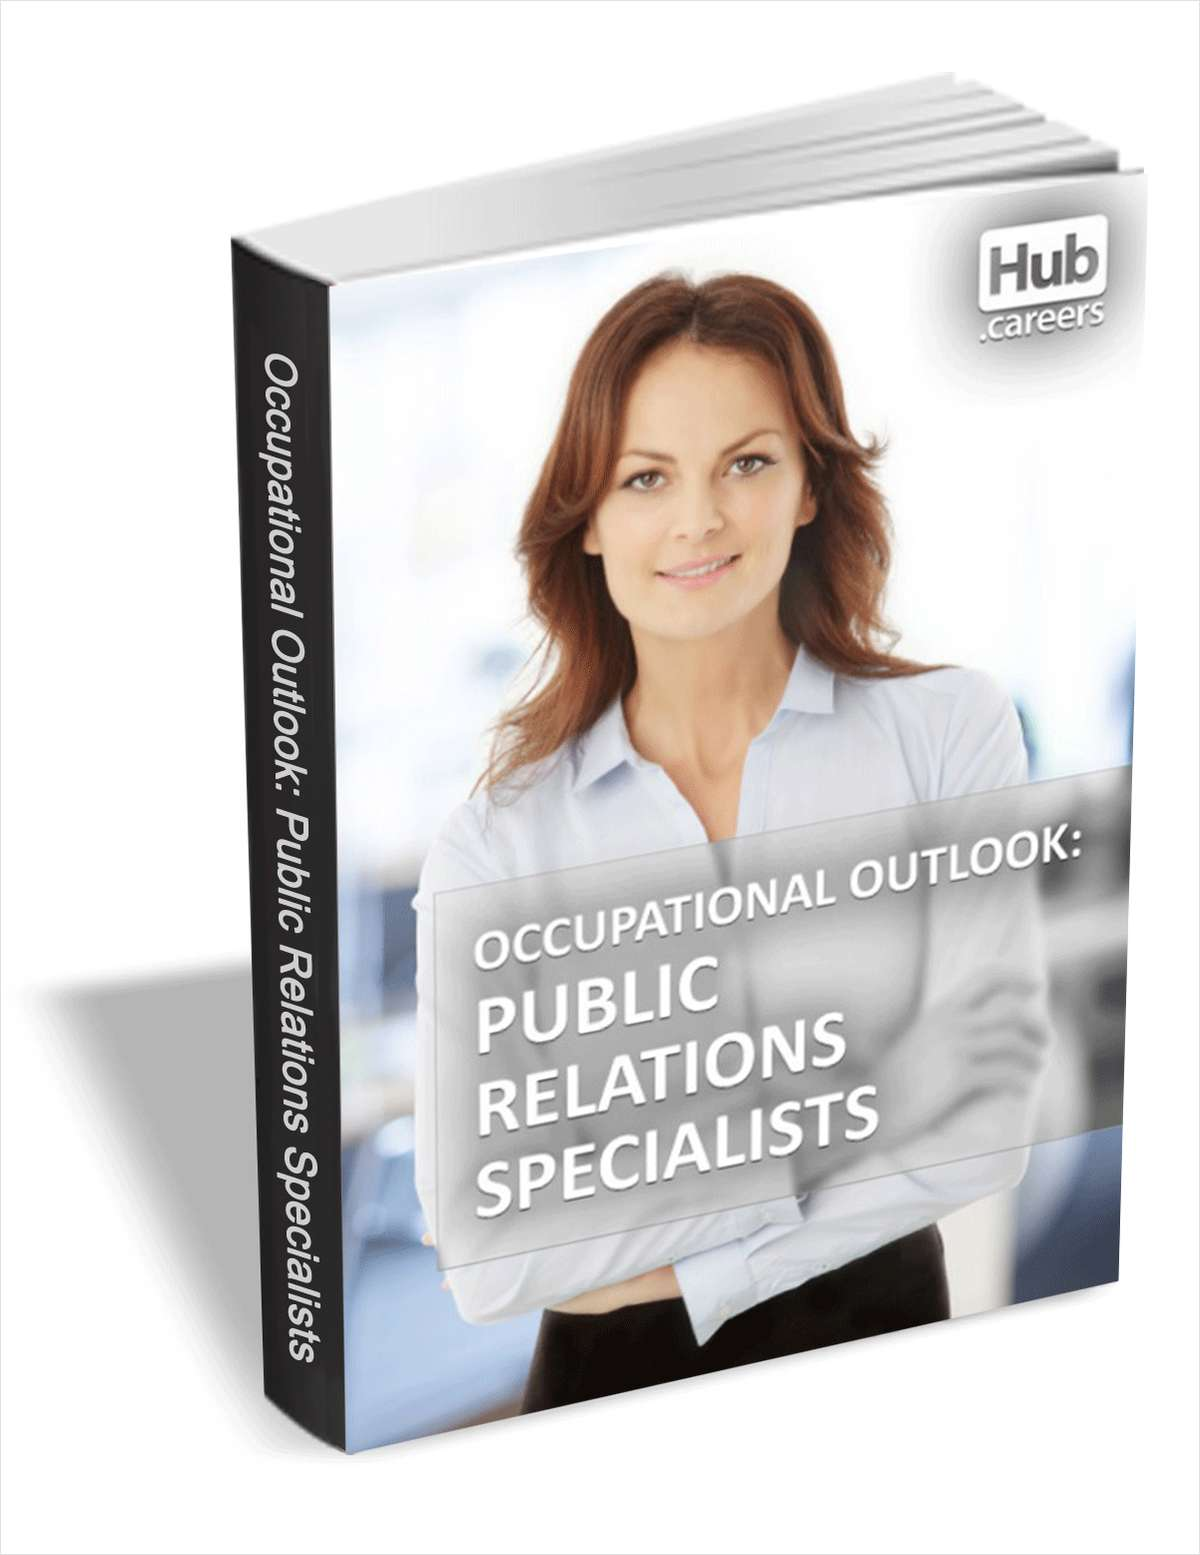 public relations career paper Literally public relations mean 'relations with publics', eg customer, employees, investors, communities, media, suppliers, government, industry bodies, pressure groups, competitors etc.